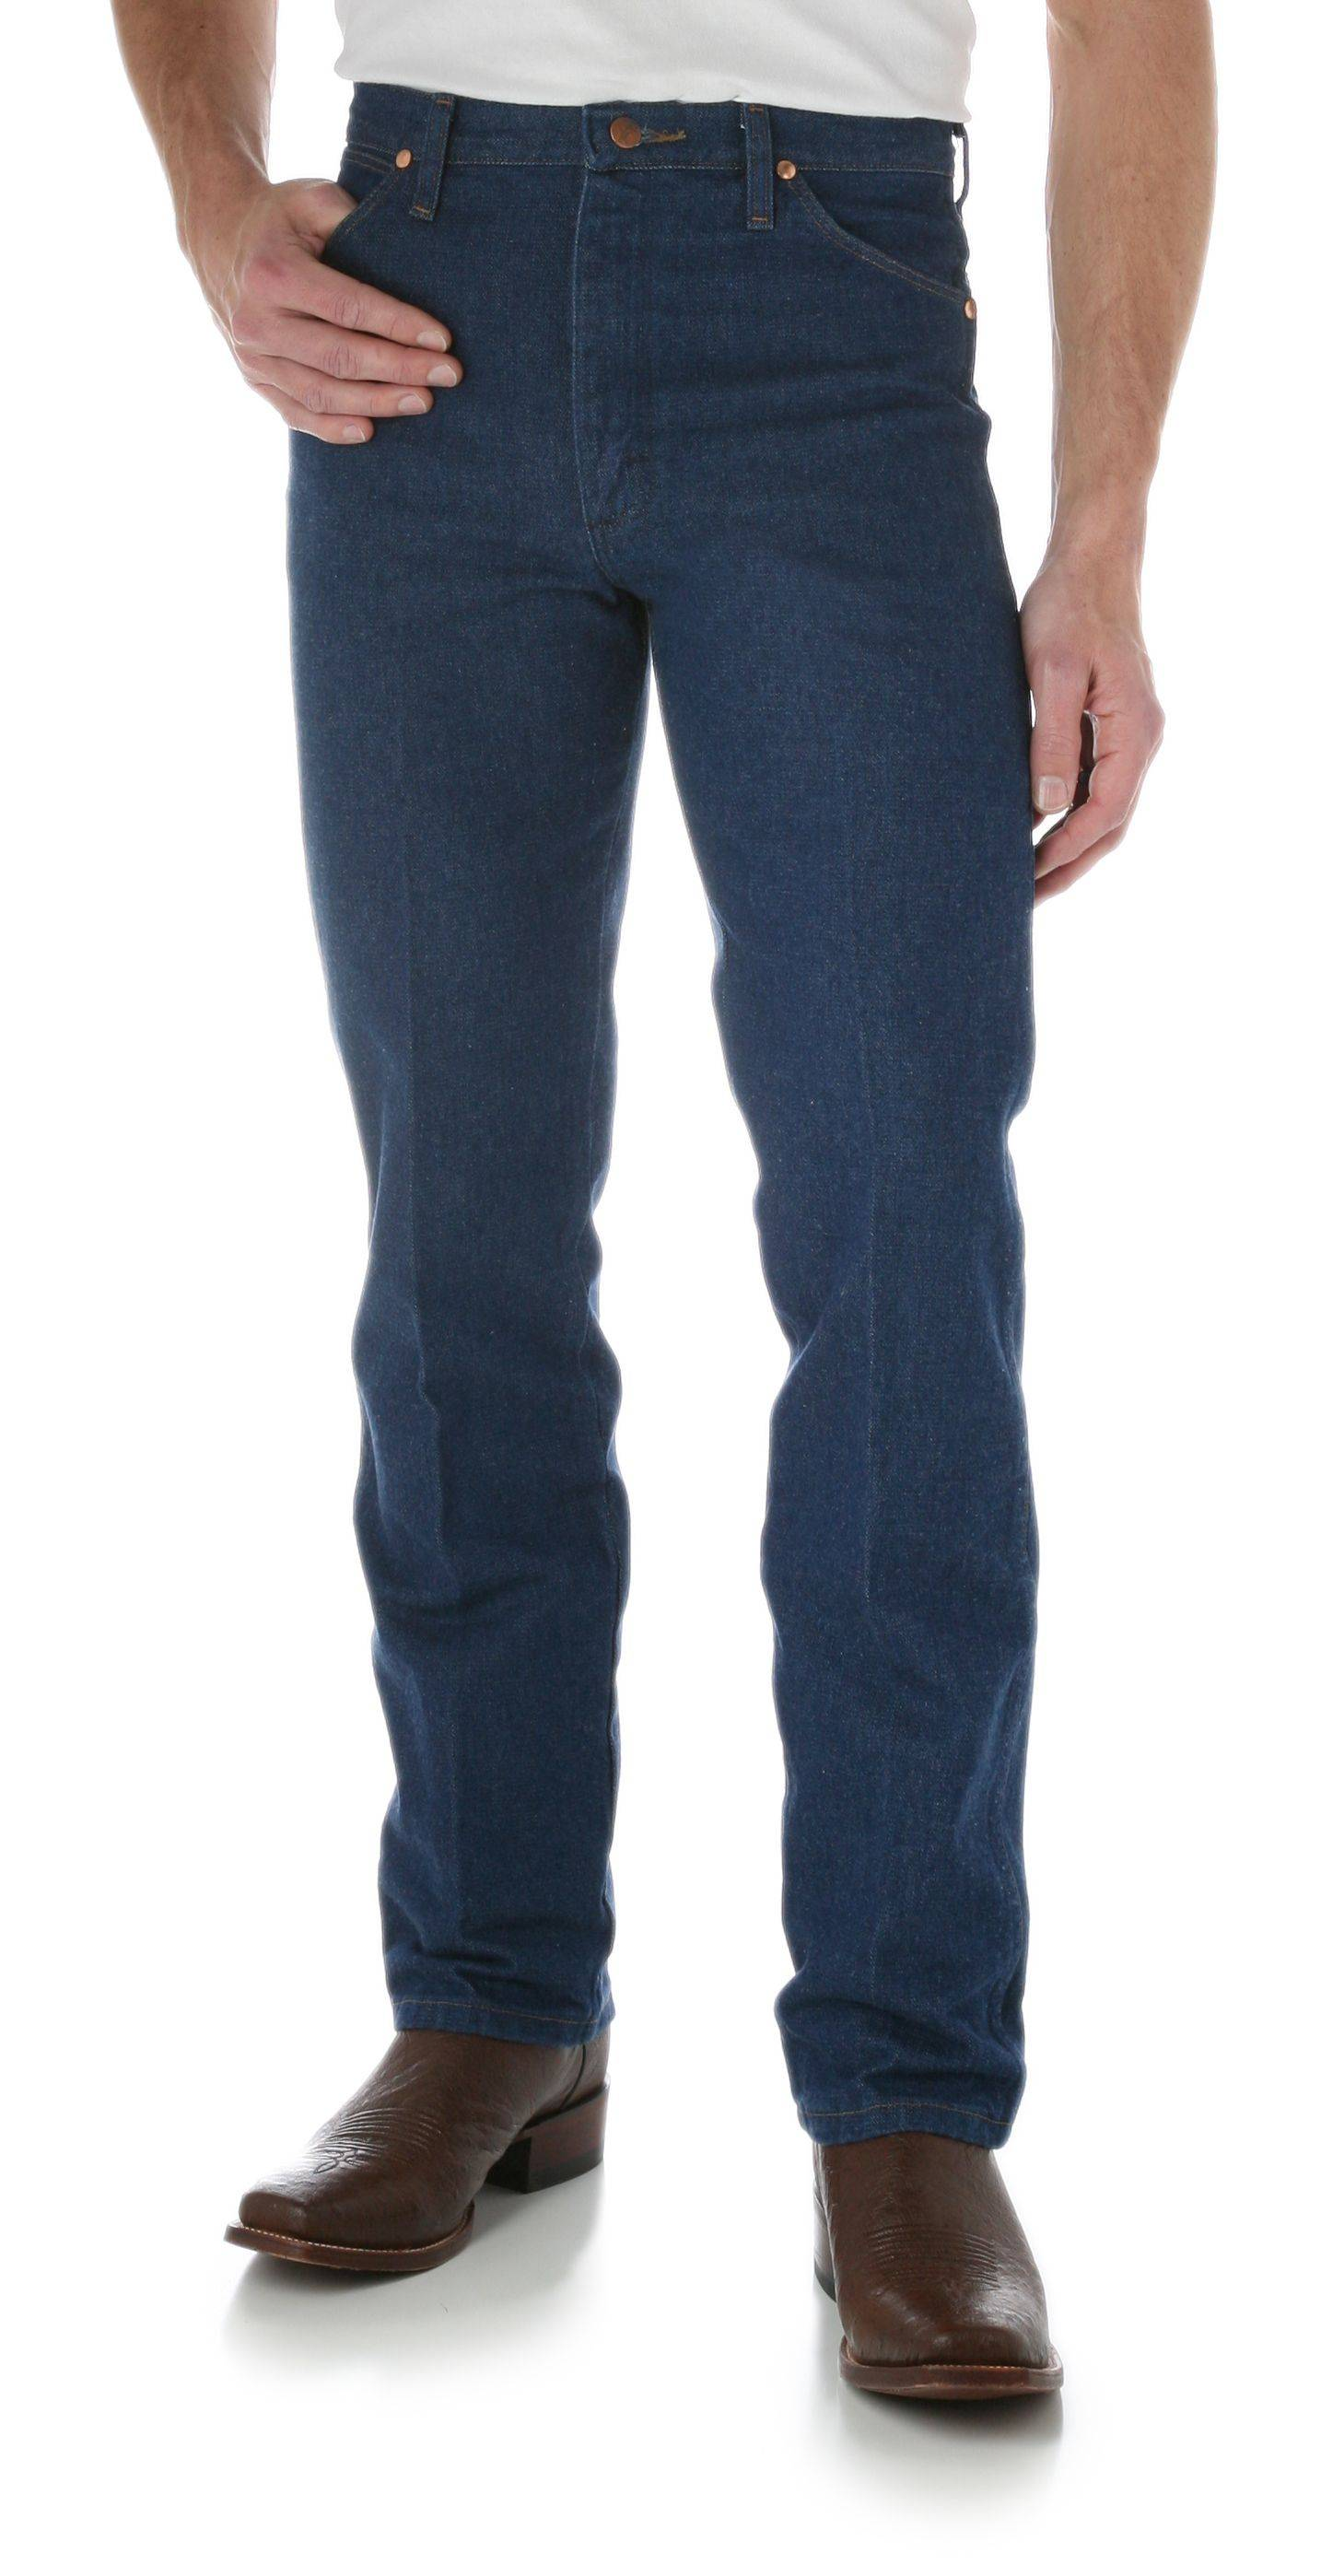 Wrangler Men's Tall and Slim Cowboy Cut Jeans